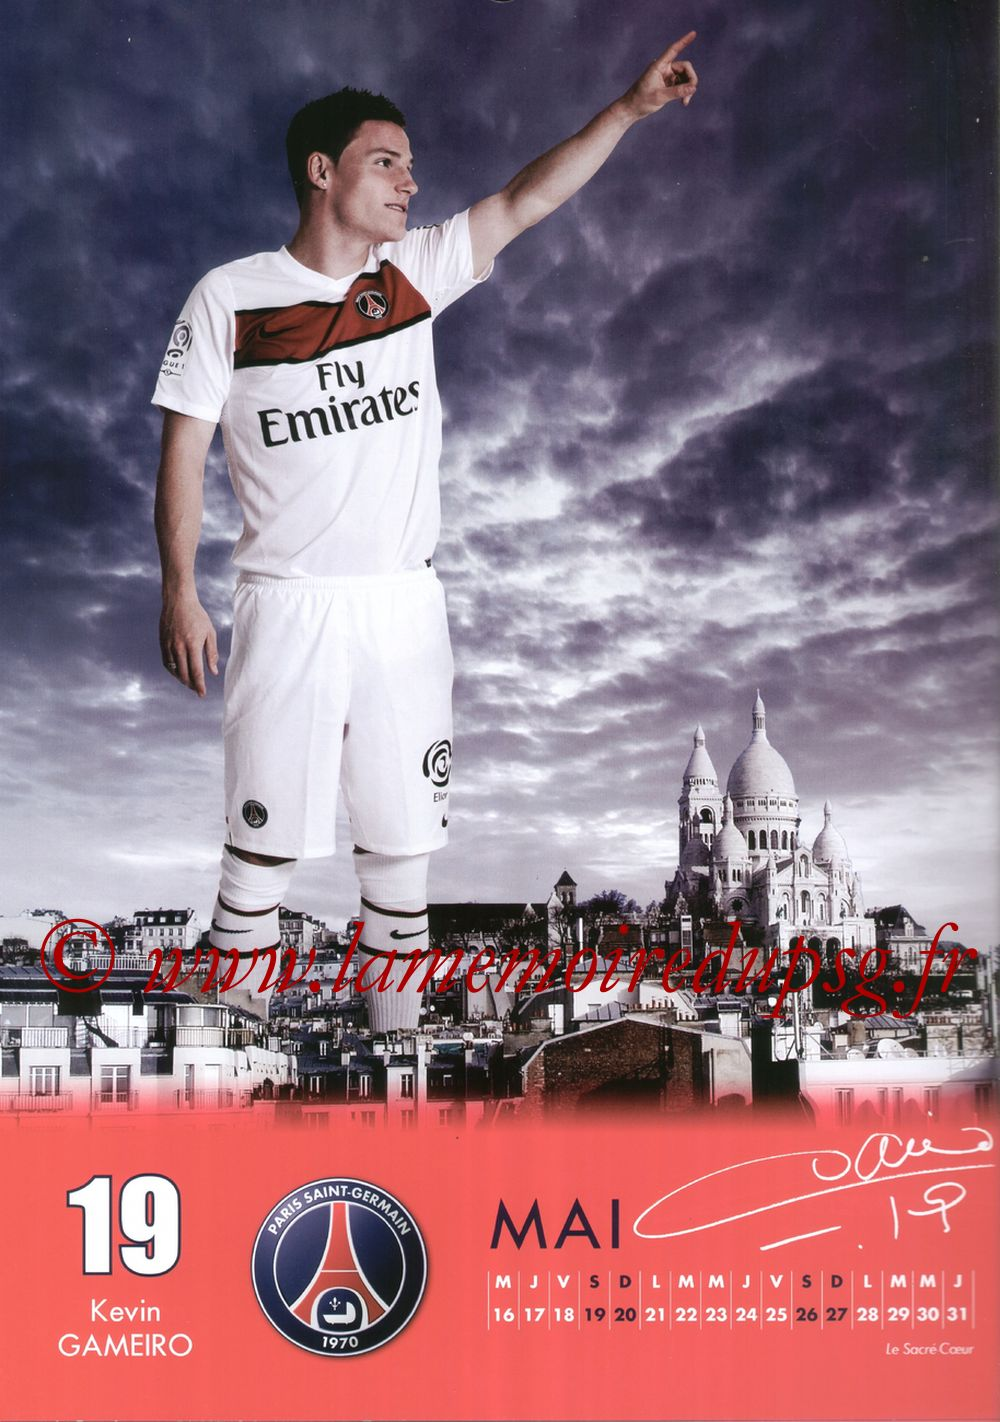 Calendrier PSG 2012 - Page 10 - Kevin GAMEIRO